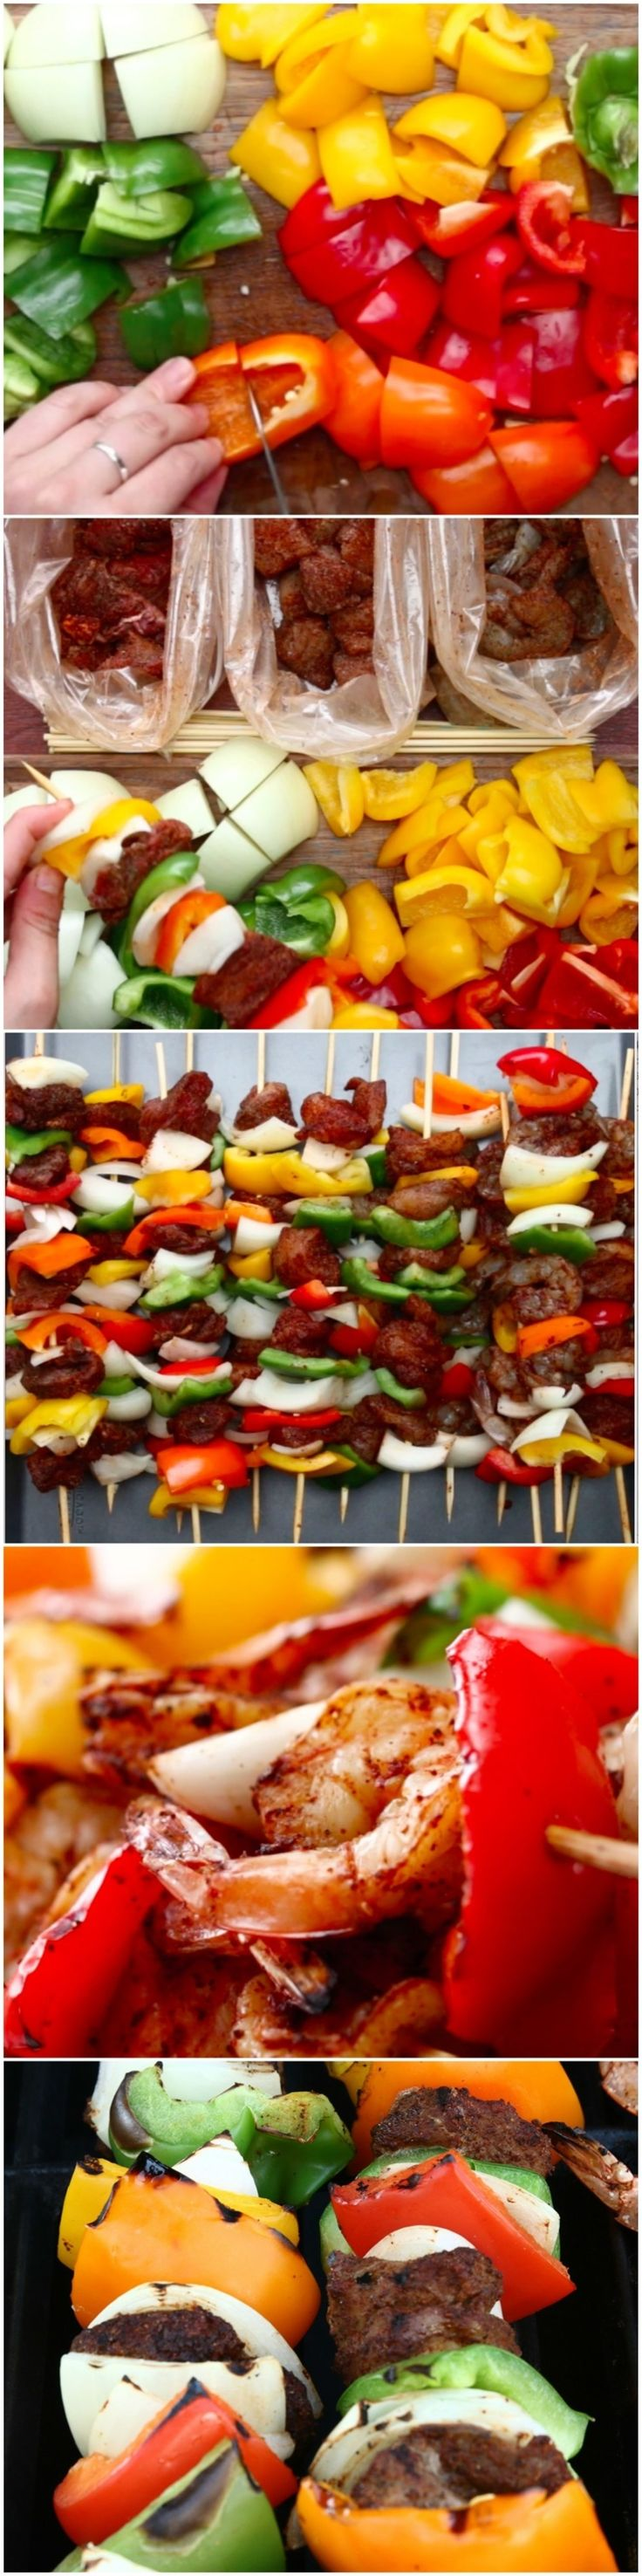 These Fajita Skewers Are So Perfect For Last-Minute Summer Grilling